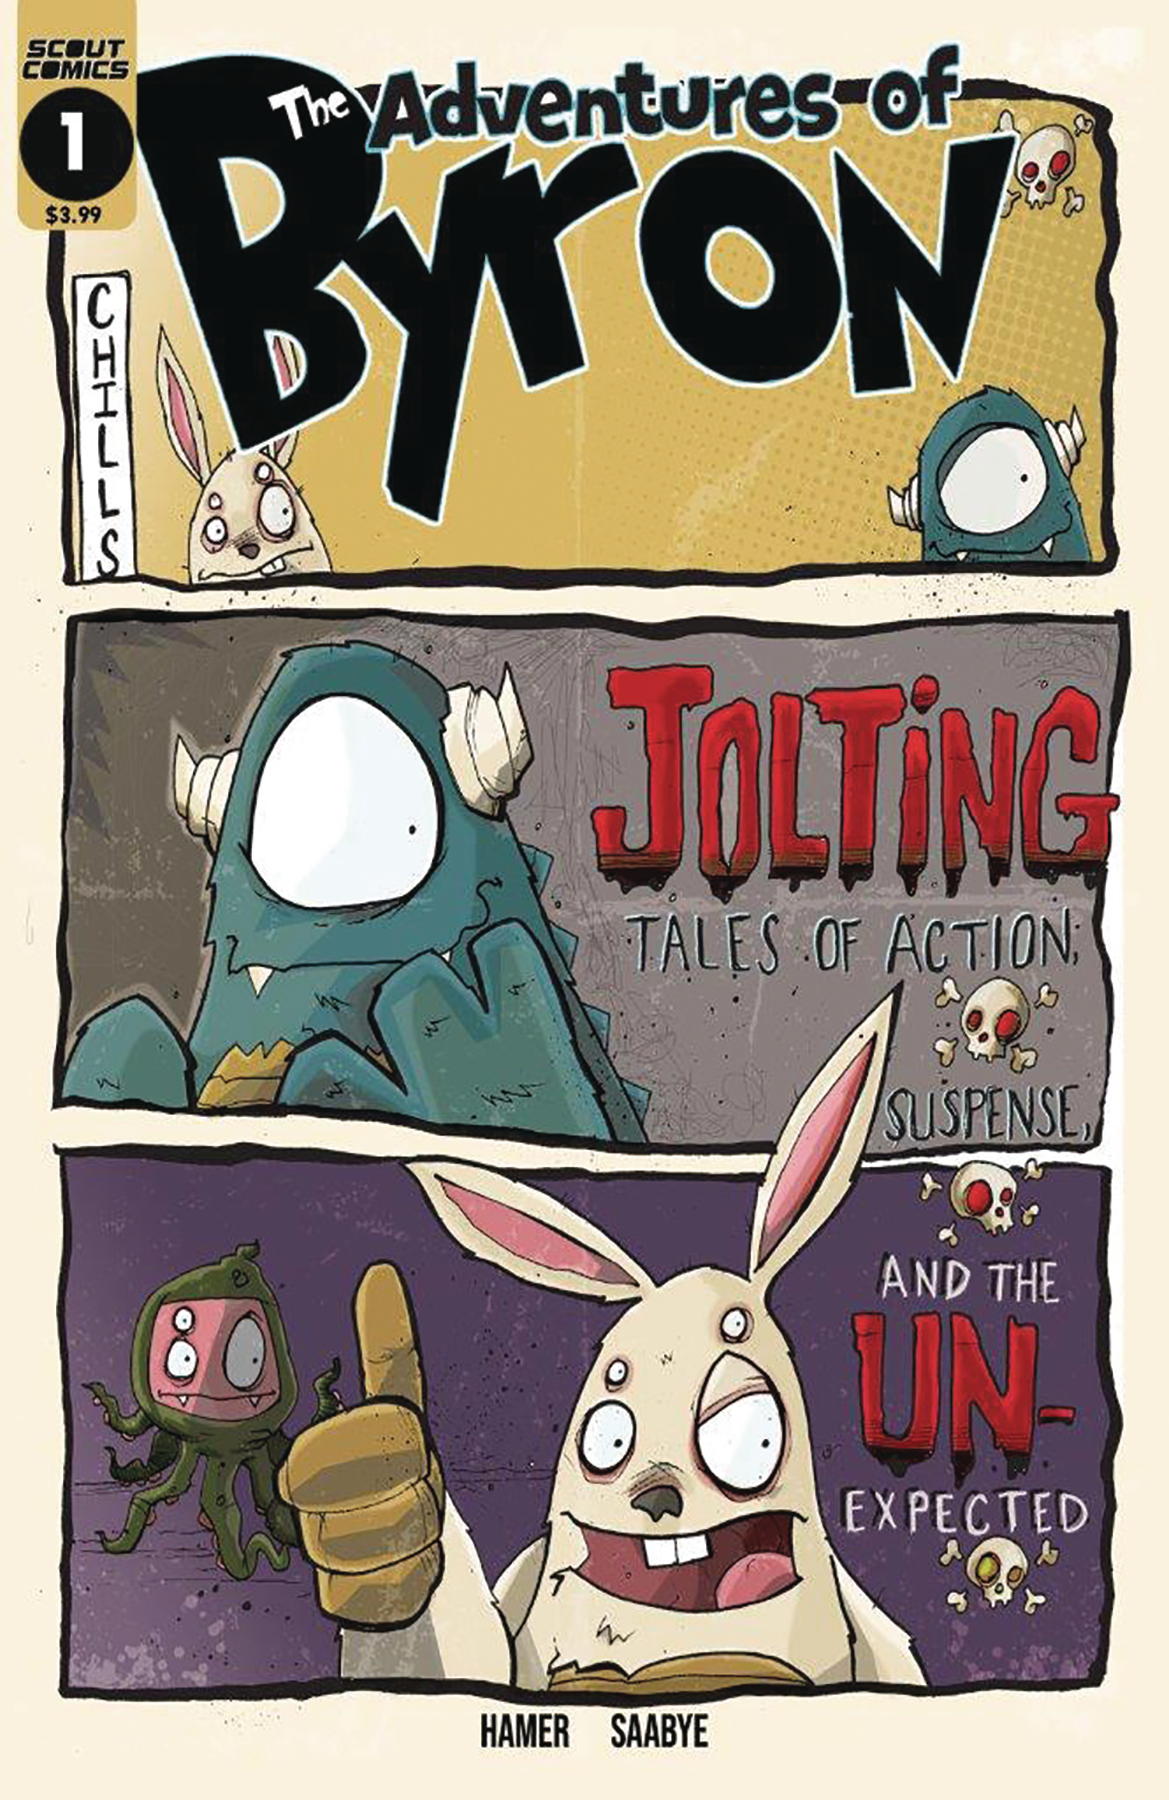 ADVENTURES OF BYRON ONE SHOT